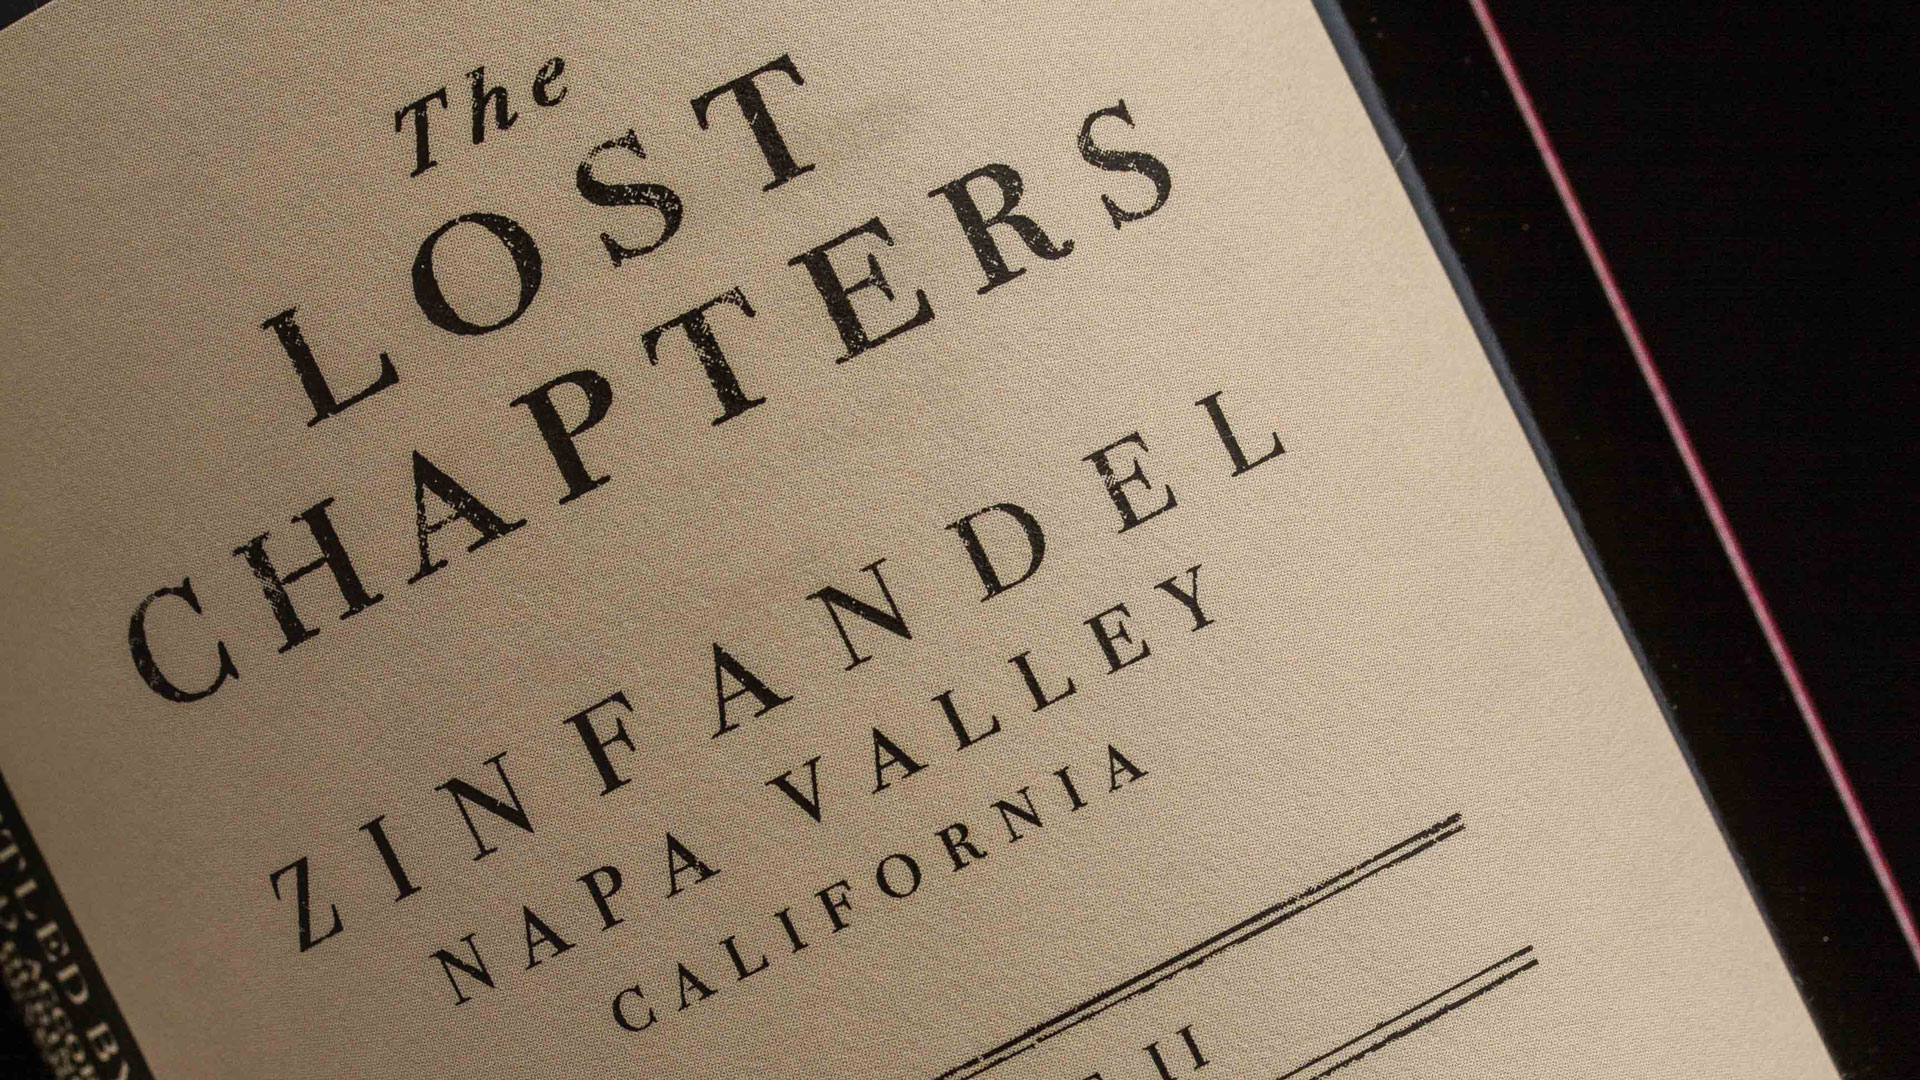 'The Lost Chapters' Wine Label - PaperSpecs